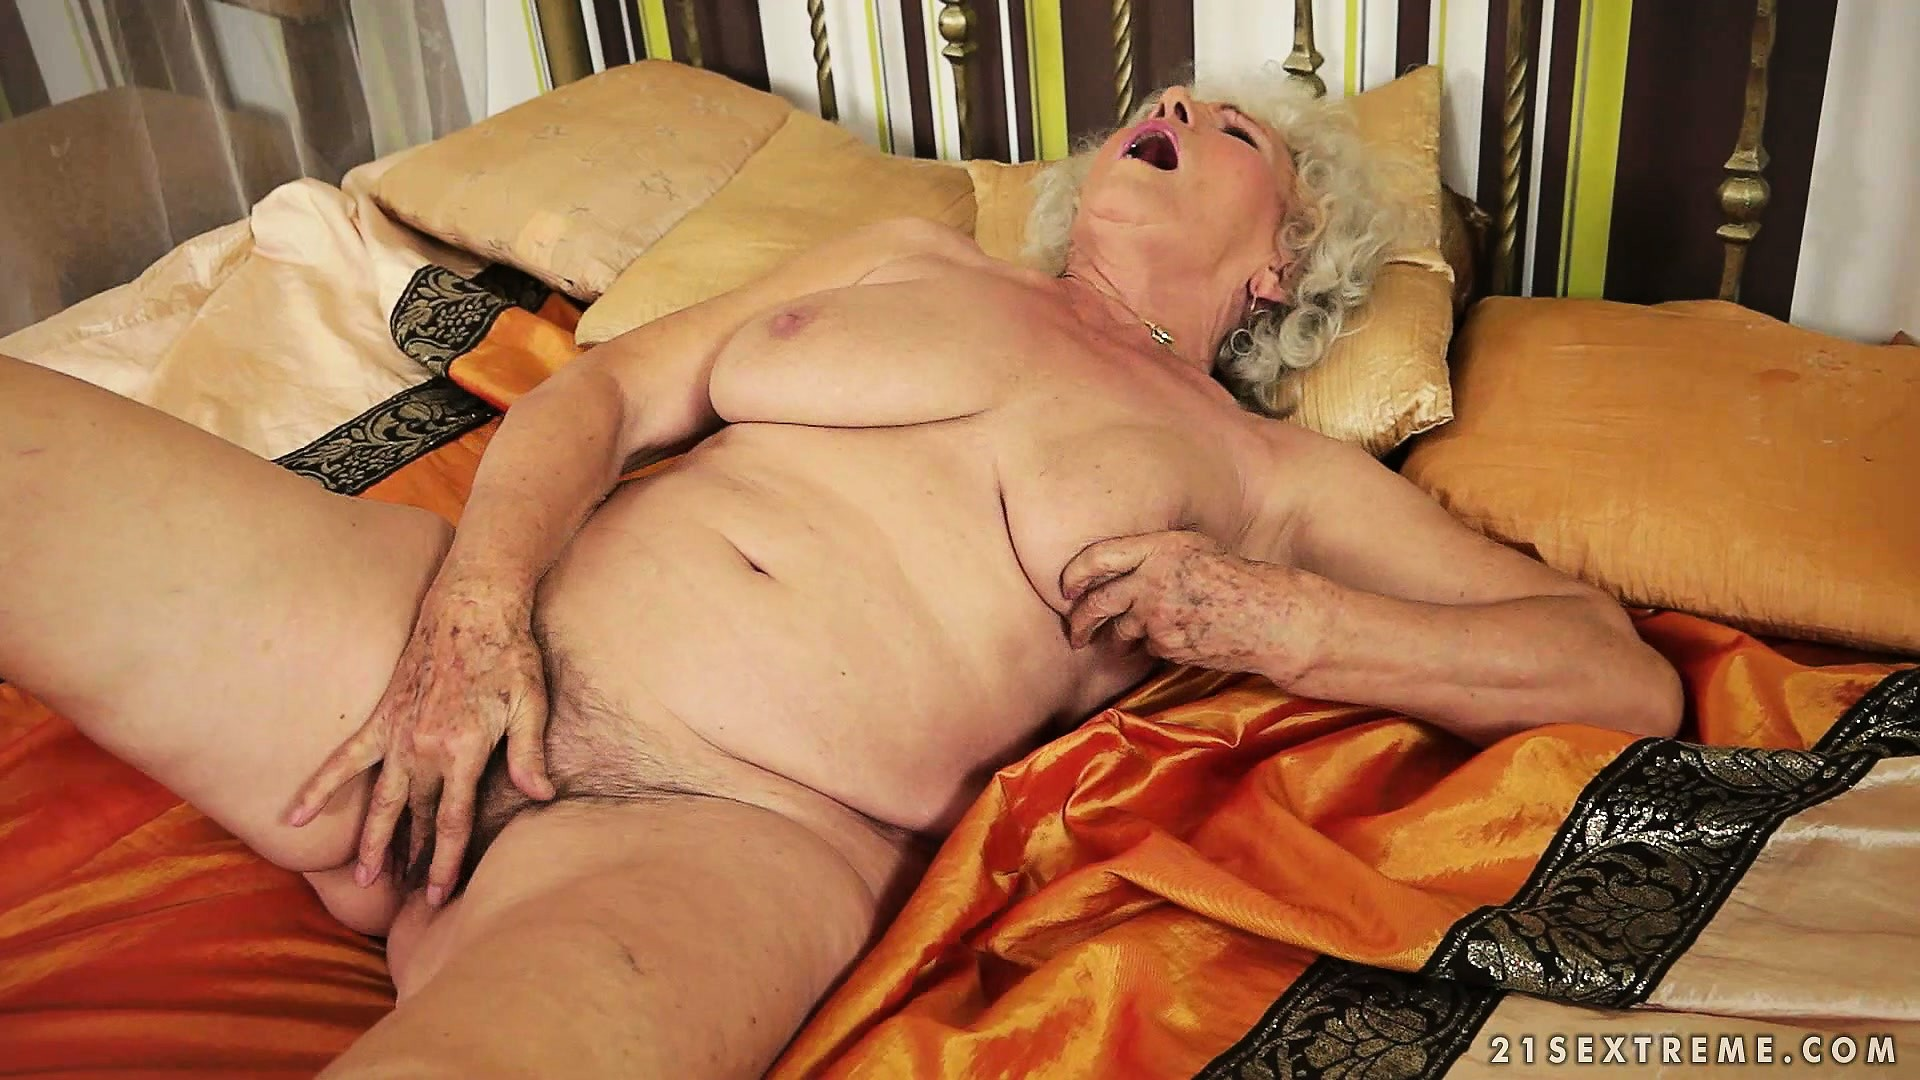 Porno Video of Afternoon Delight With Plumper Granny Toying Her Very Bushy Bush